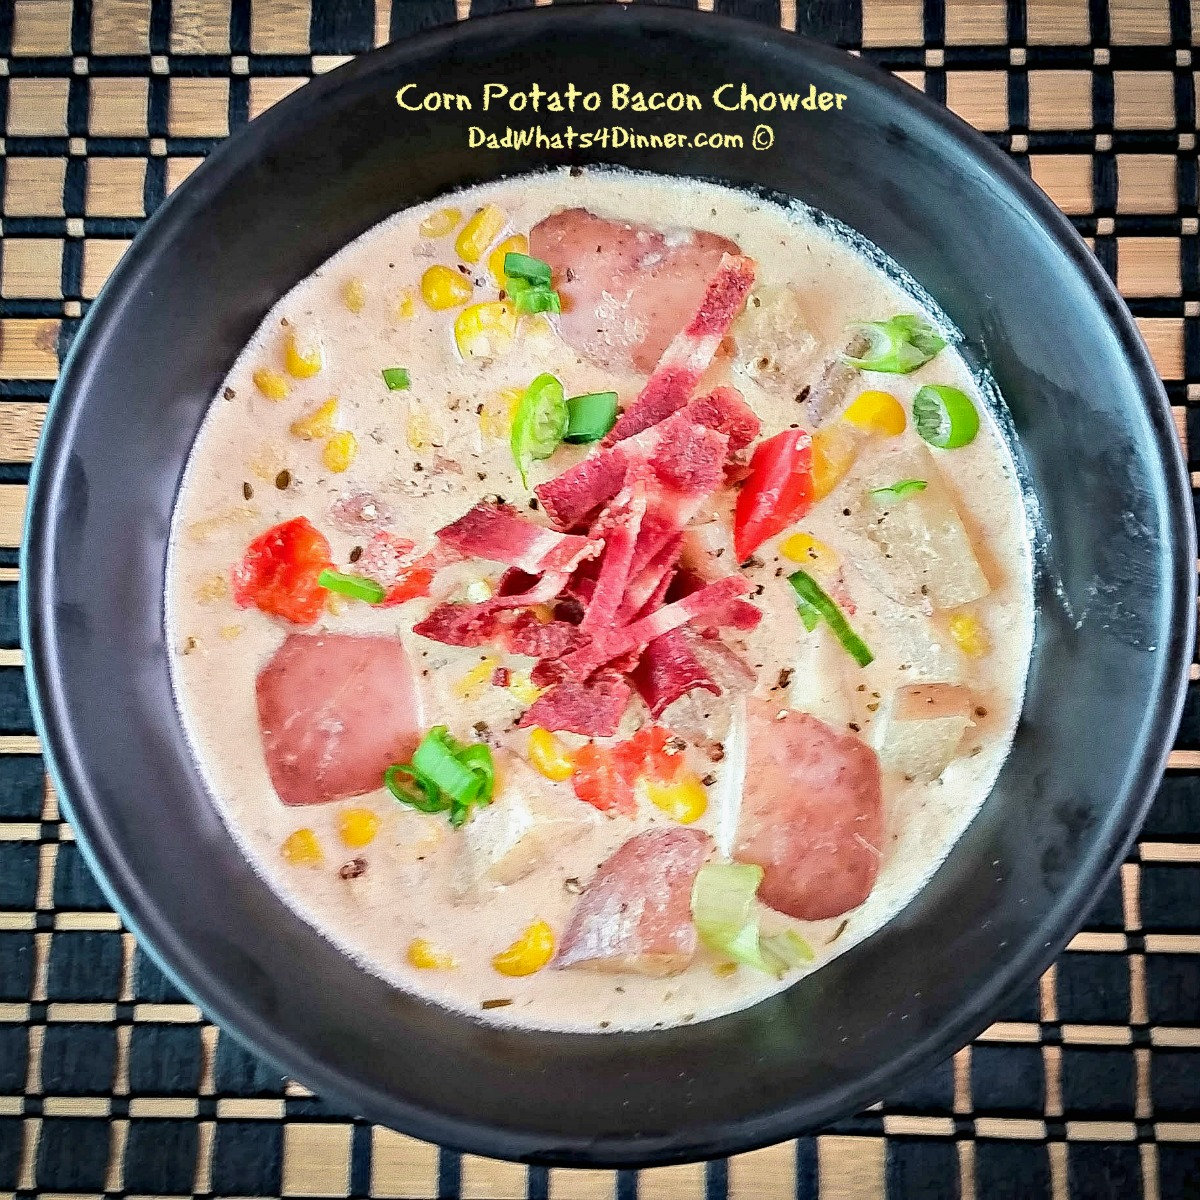 Corn Potato Bacon Chowder is a healthy version of the classic corn chowder. Bonus you can it in the slow cooker. Healthy and easy!